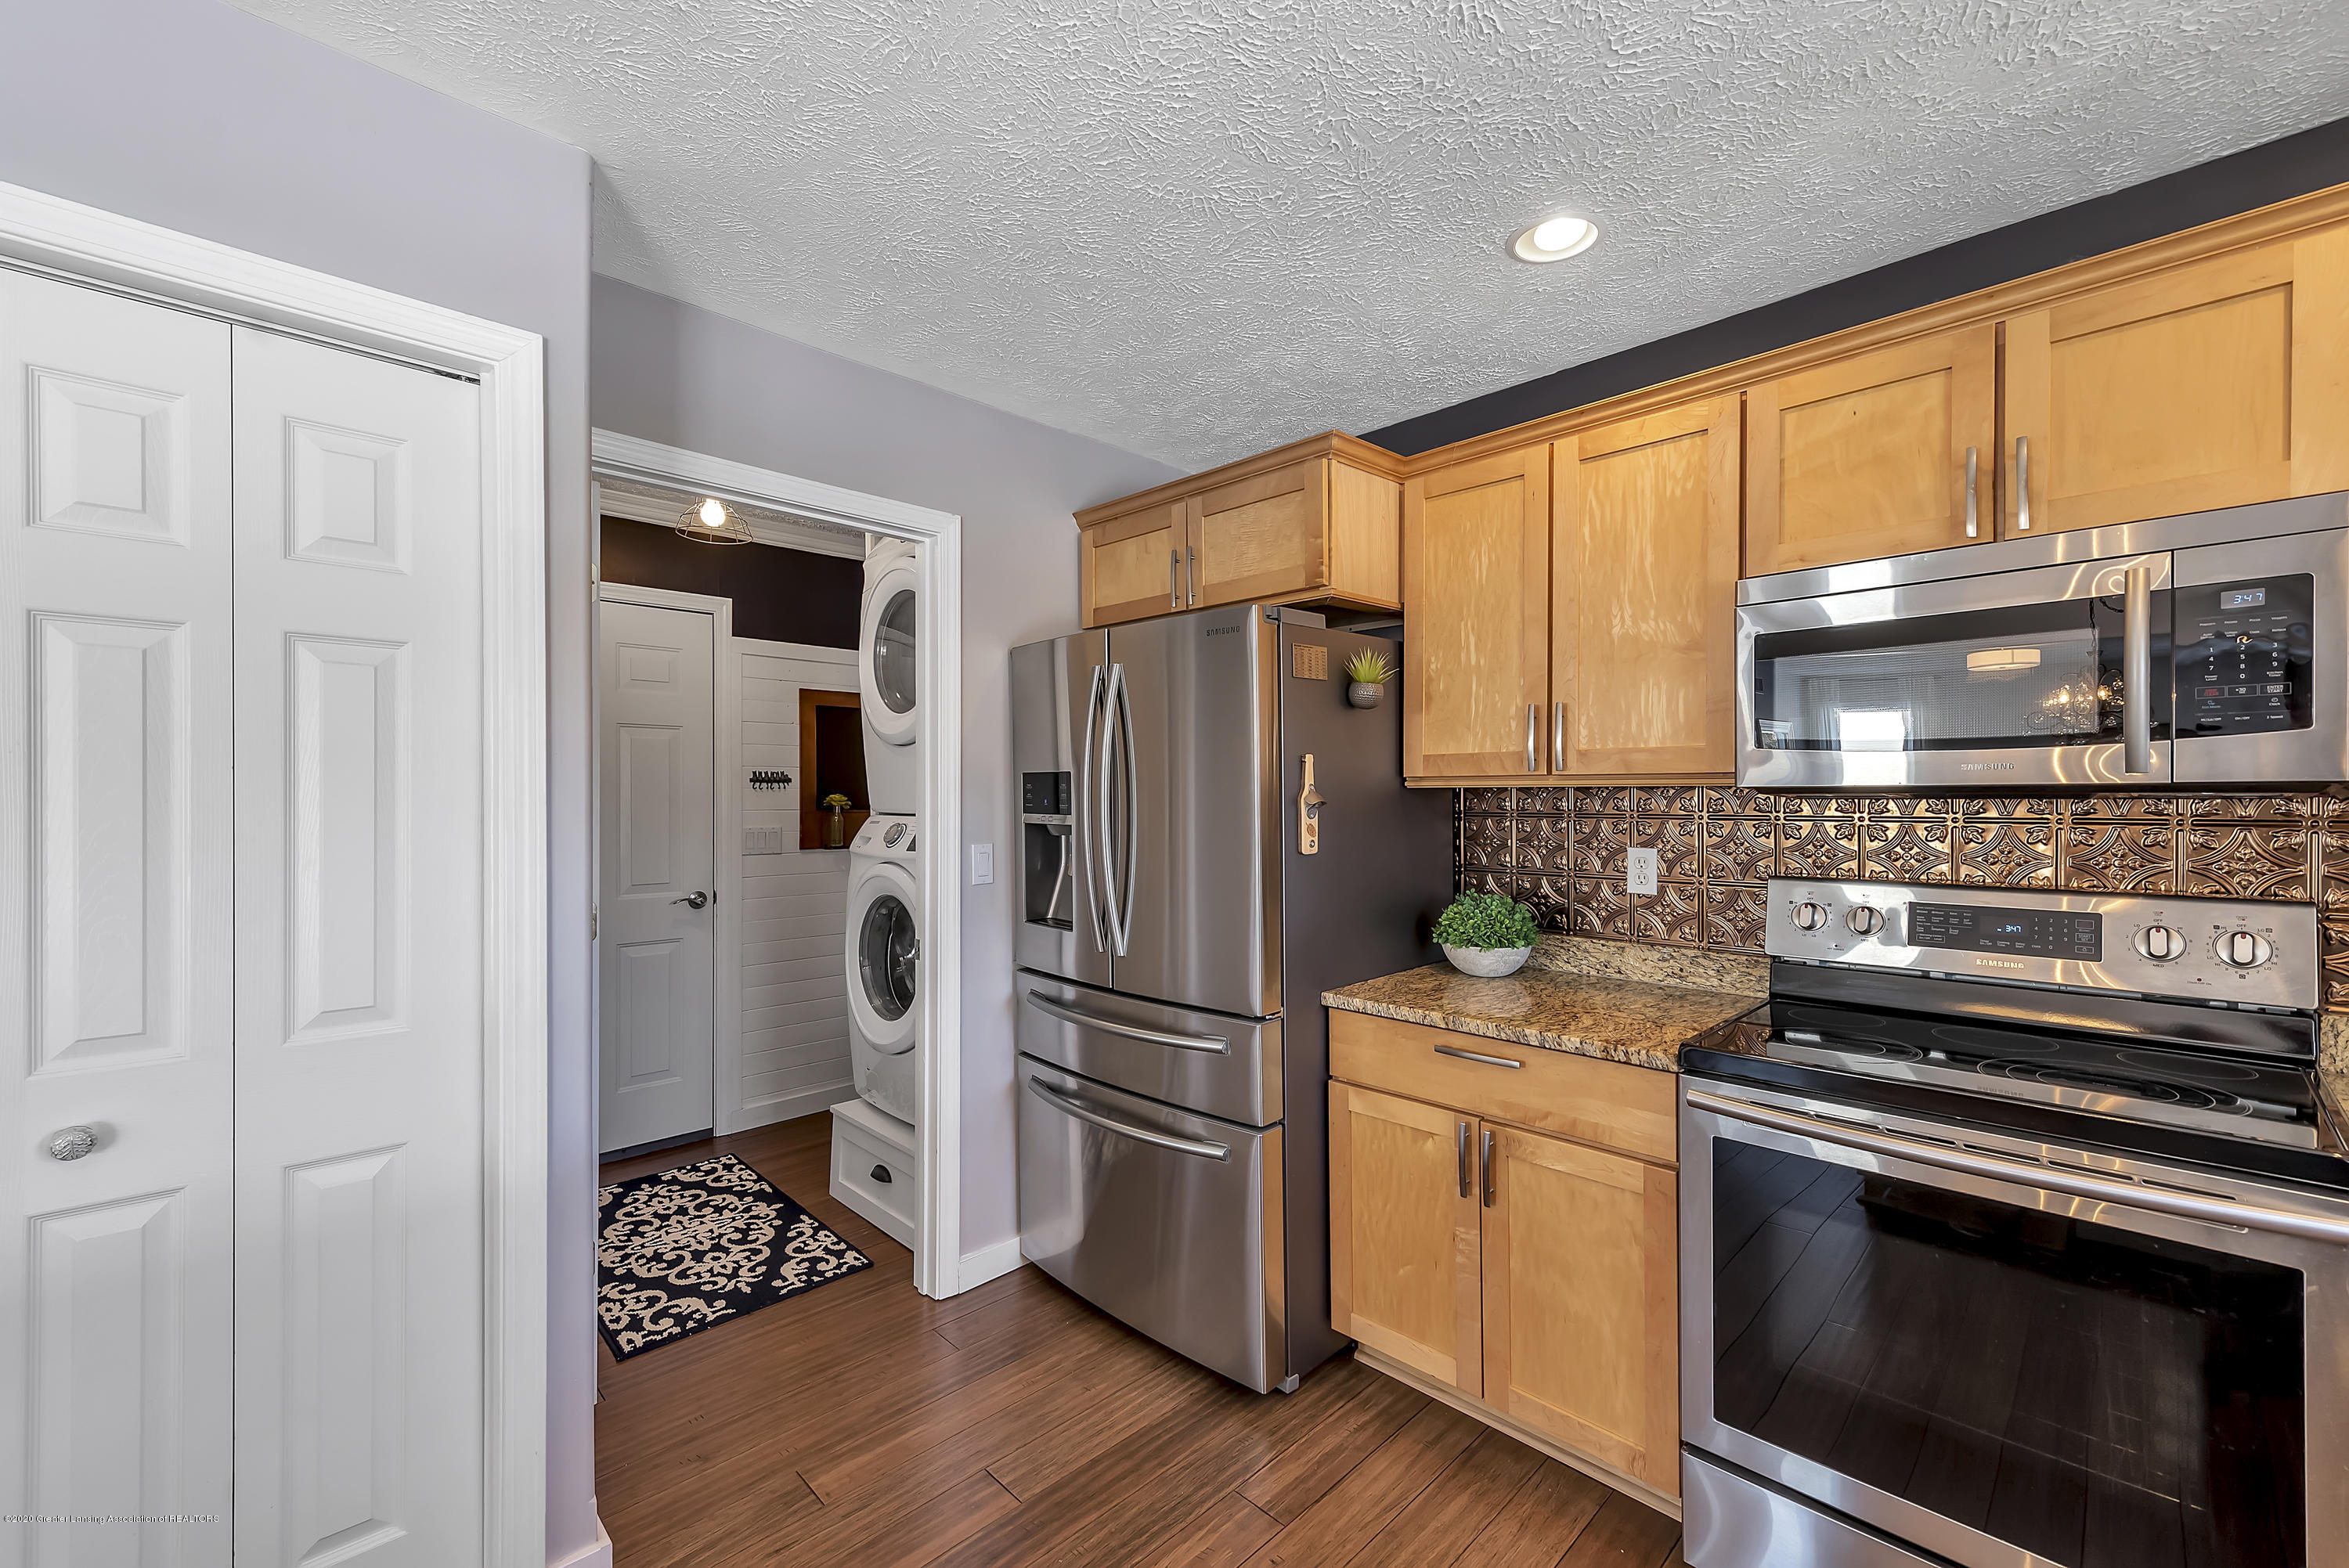 5206 Witherspoon Way - 5206-Witherspoon-Way-WindowStill-Real-Es - 21